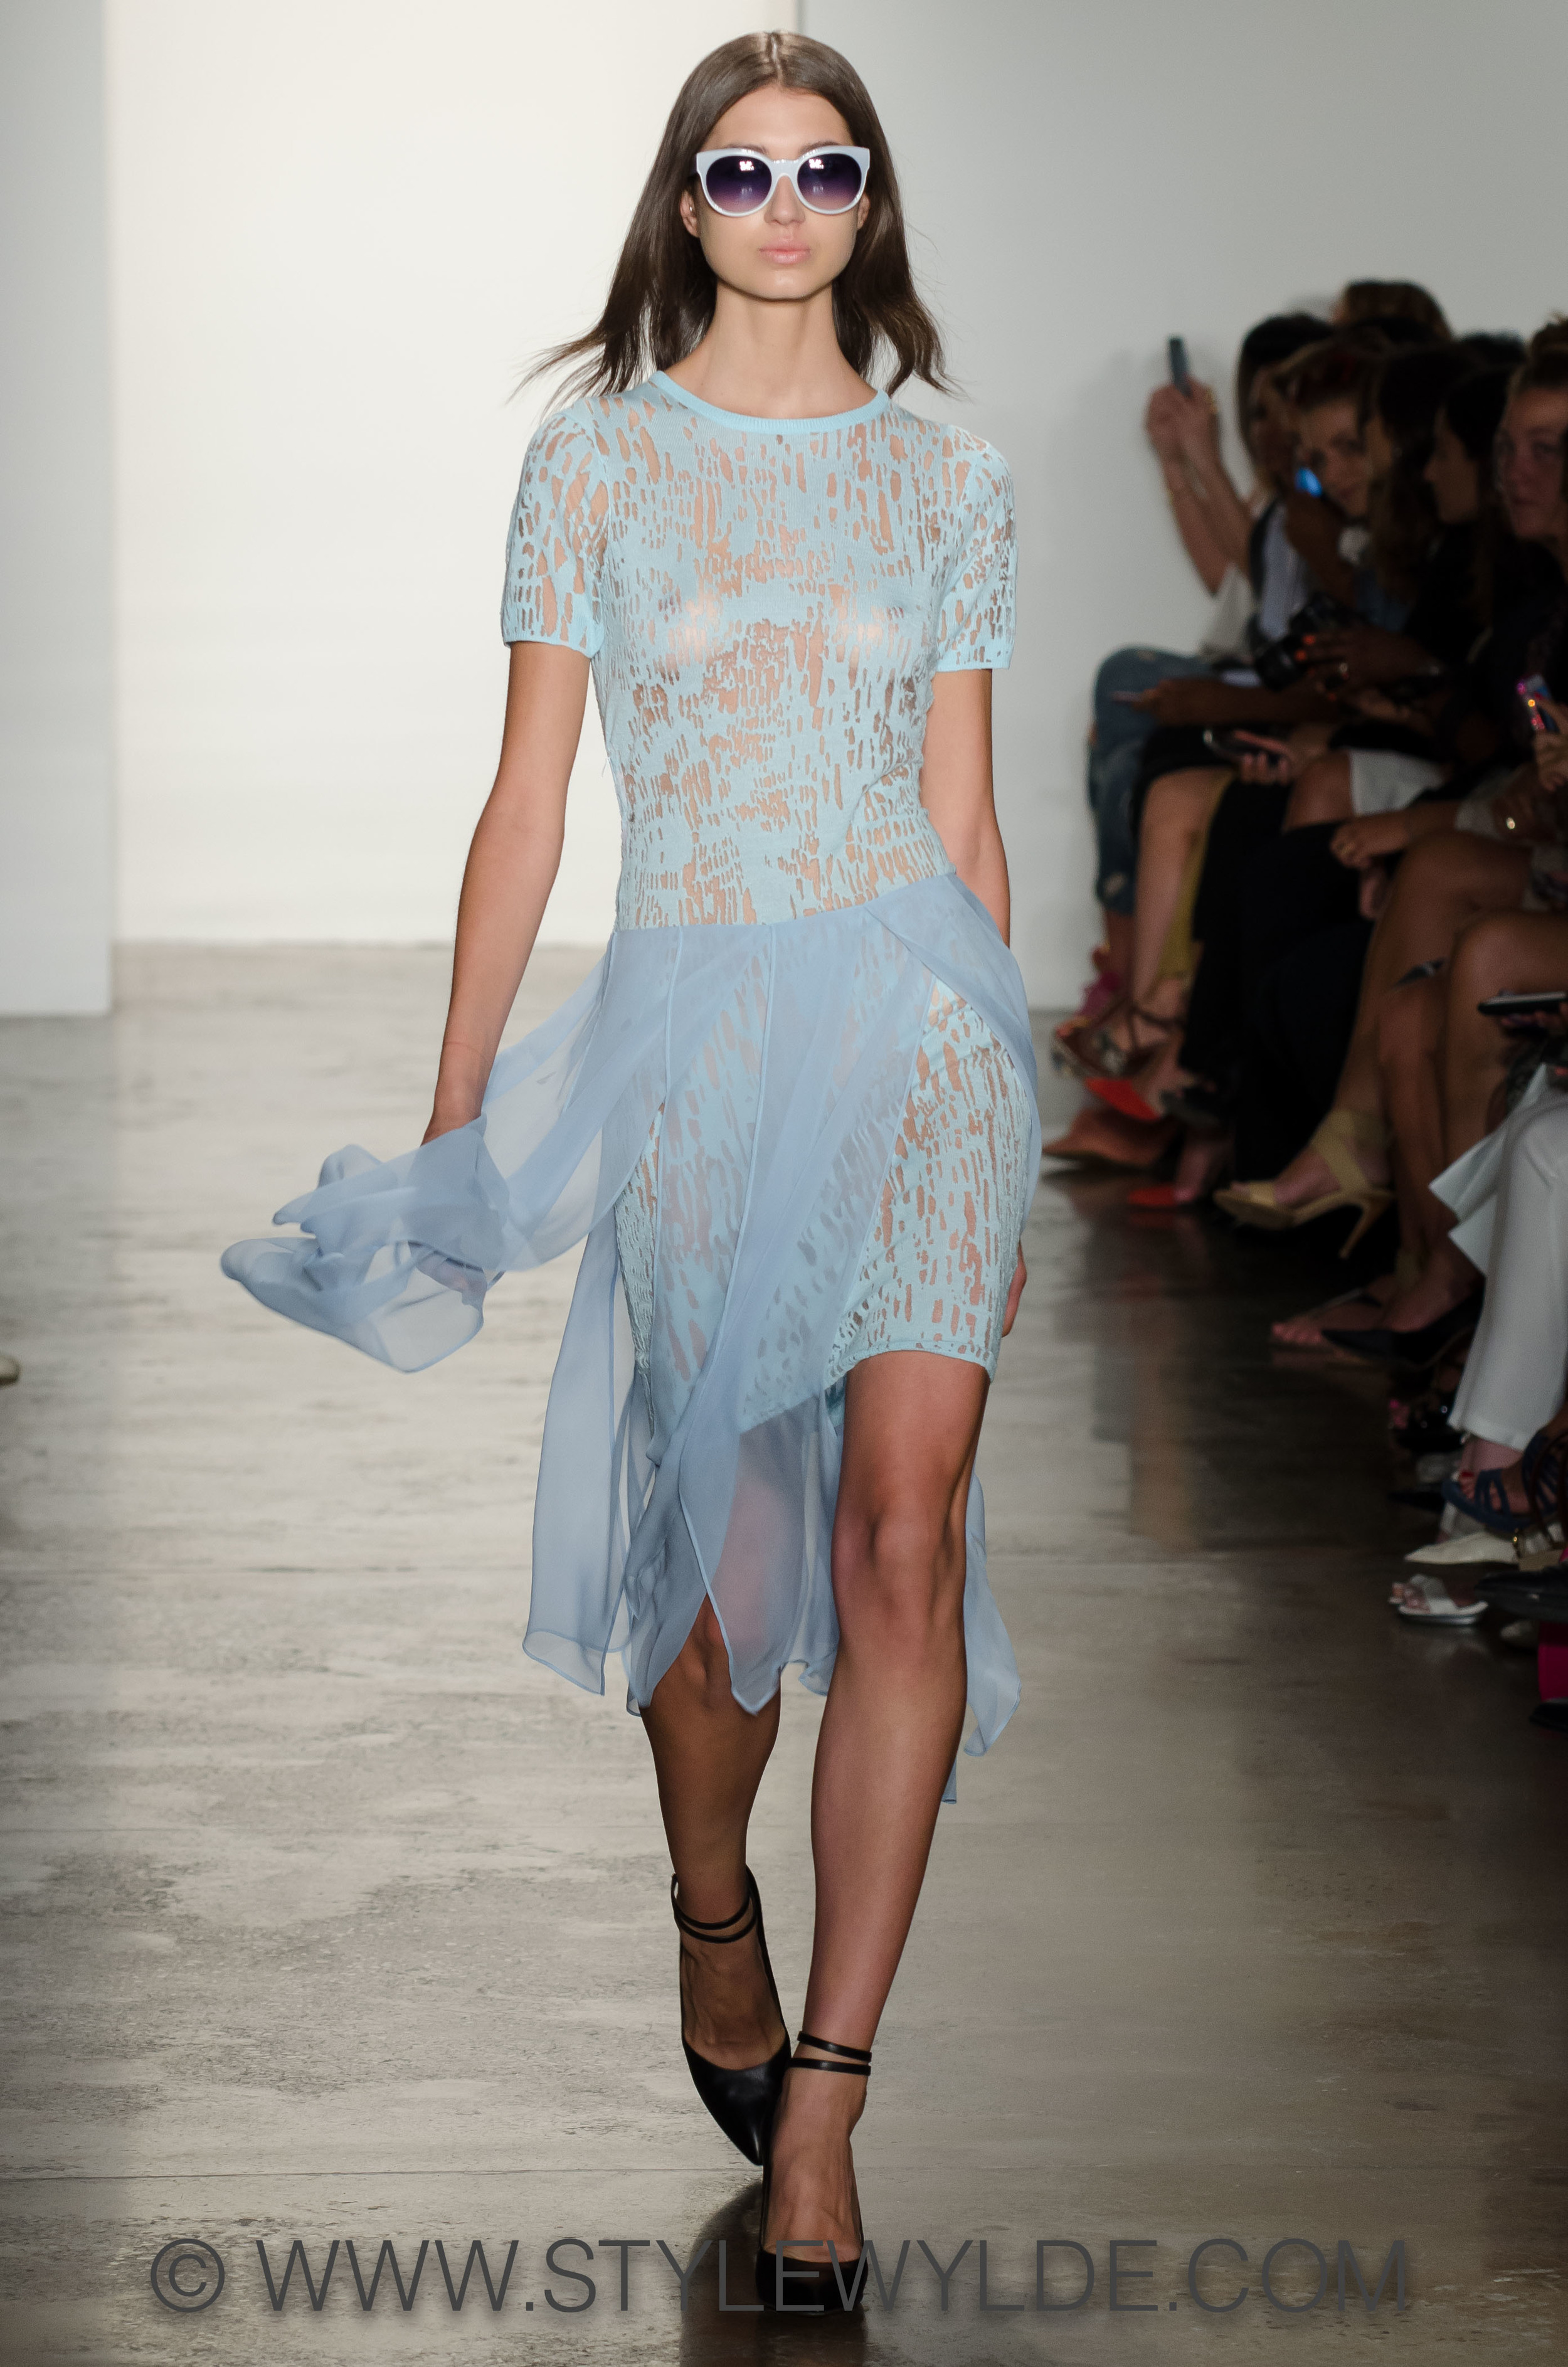 StyleWylde_Timo_SS15_FOH (2 of 38).jpg